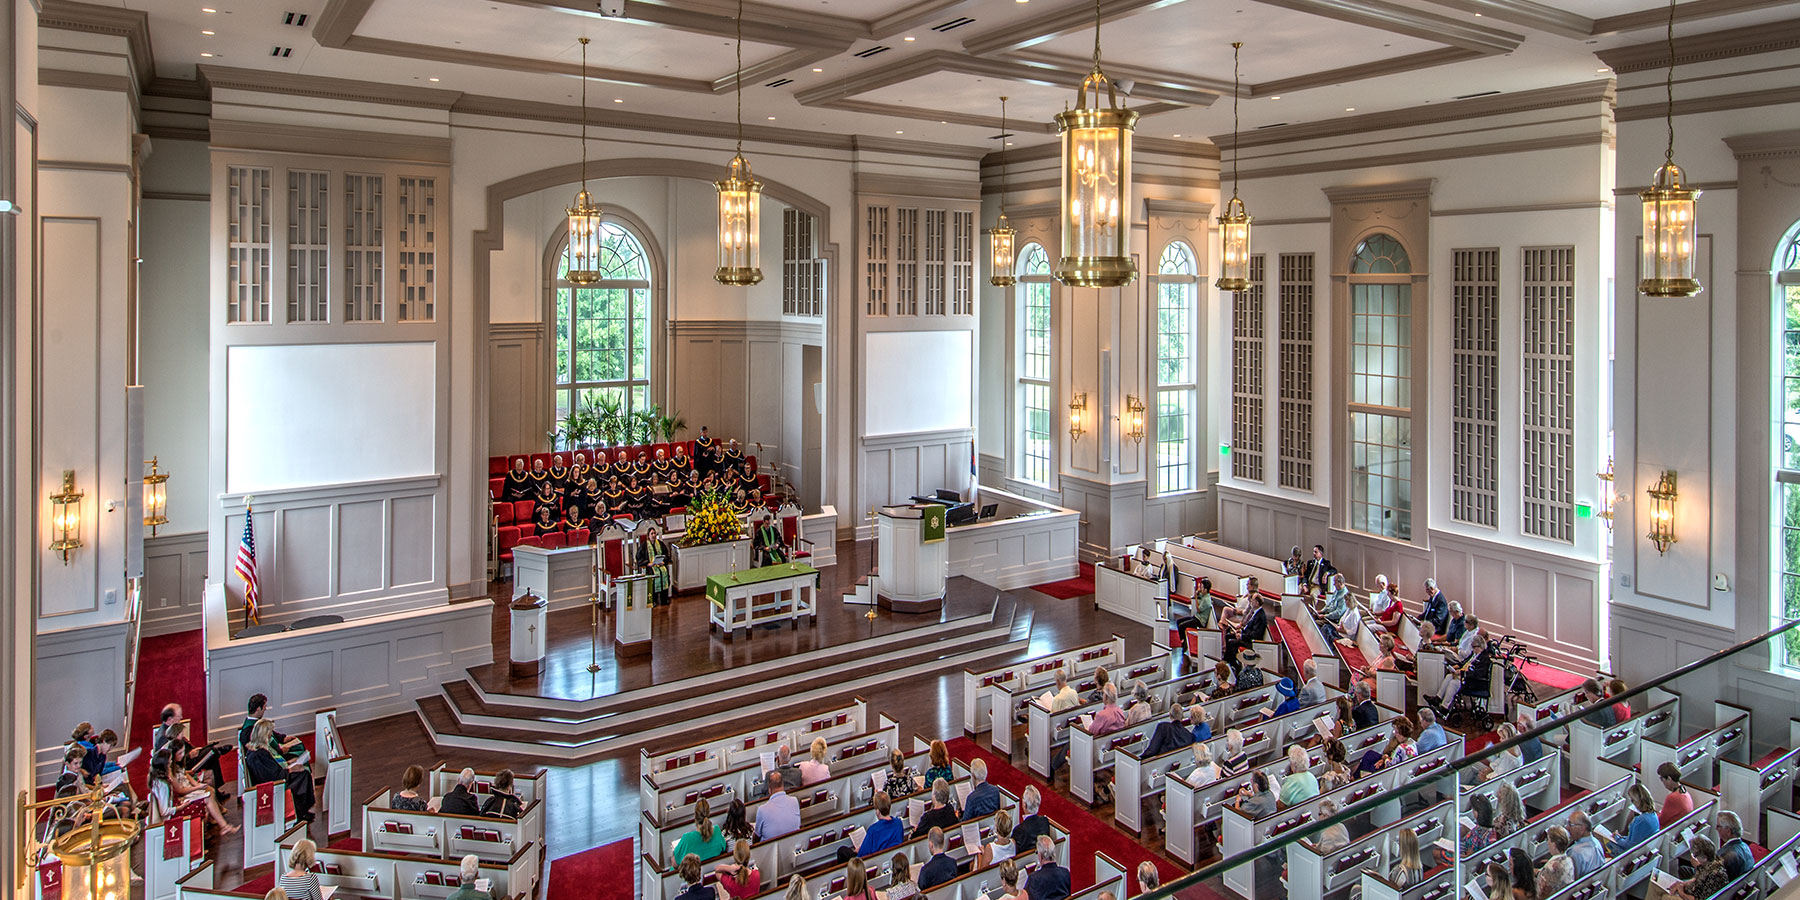 BOUDREAUX worked with First Presbyterian Church in Myrtle Beach to provide a design for the interior and exterior of this church.